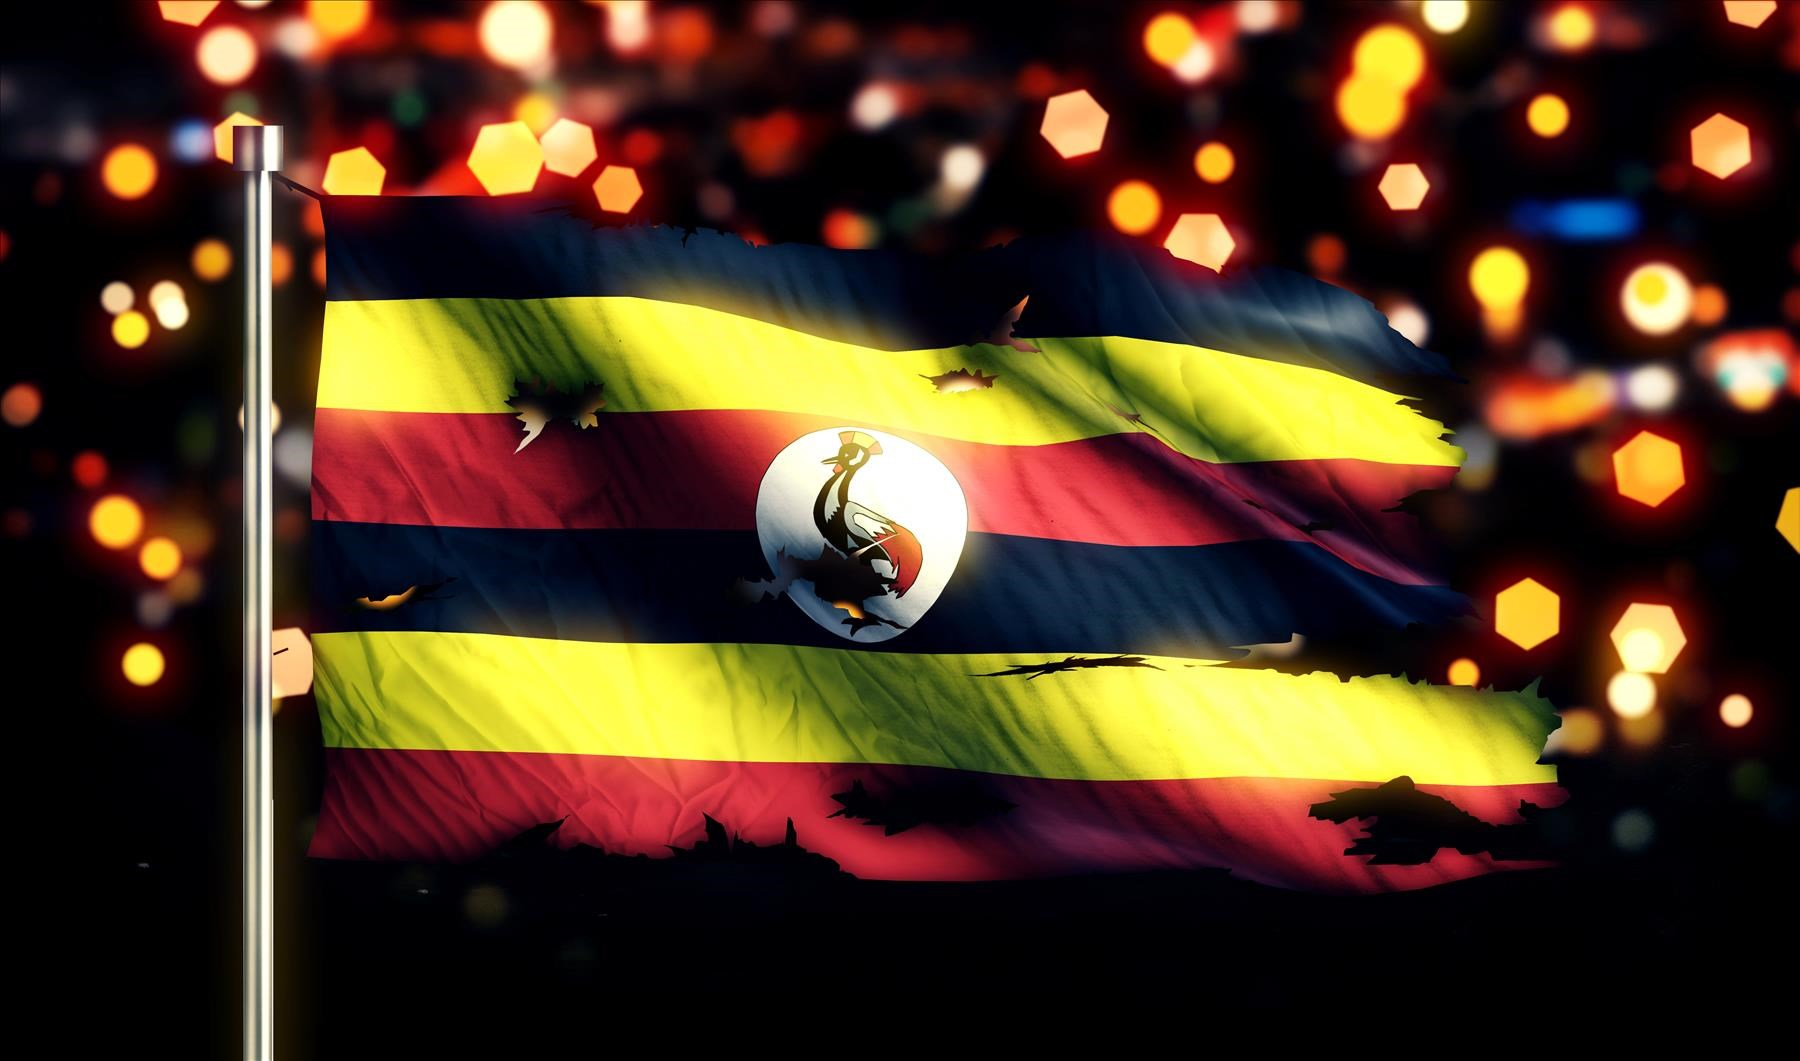 Uganda at 55 – Part 2 Missed Opportunities - By Dr. Bbuye Lay Mukanga